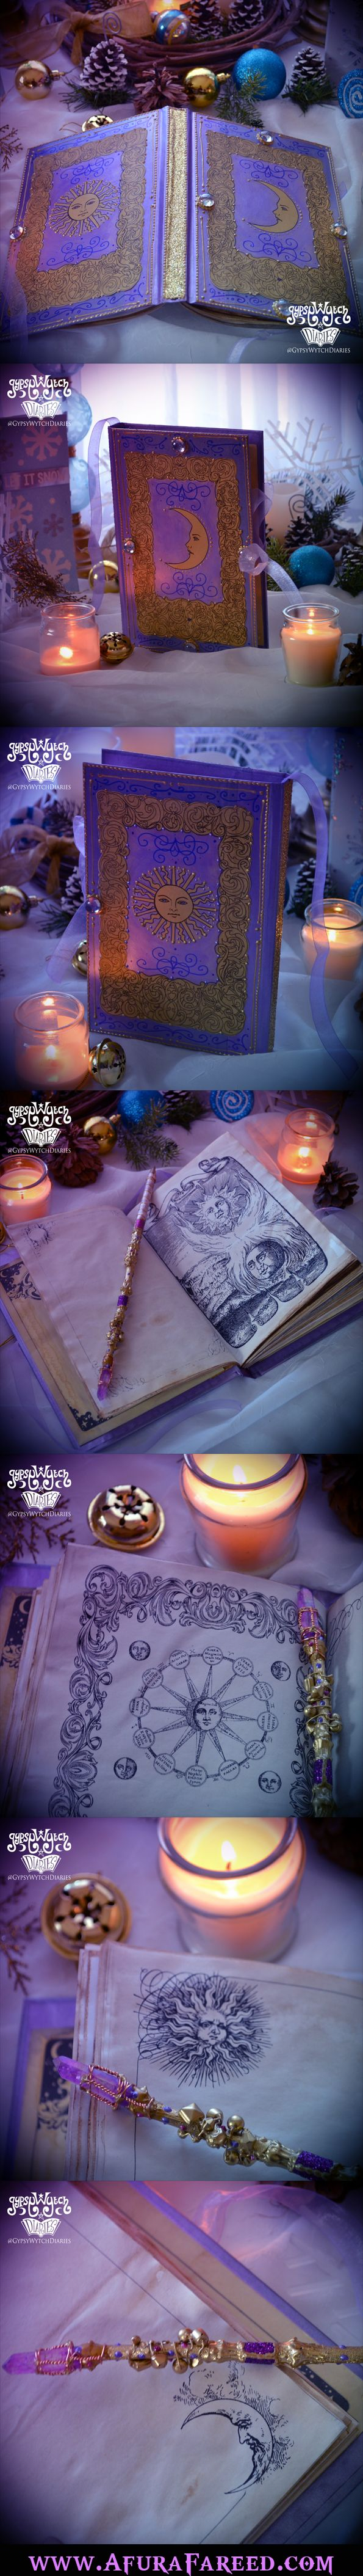 Handcrafted Celestial GypsyWytch Diary Edition No. 4. Sun and moon book of shadows with vintage astrononmy illustrations and tarot card symbolism. Perfect gift for the gypsy boho free spirit witch on your list!